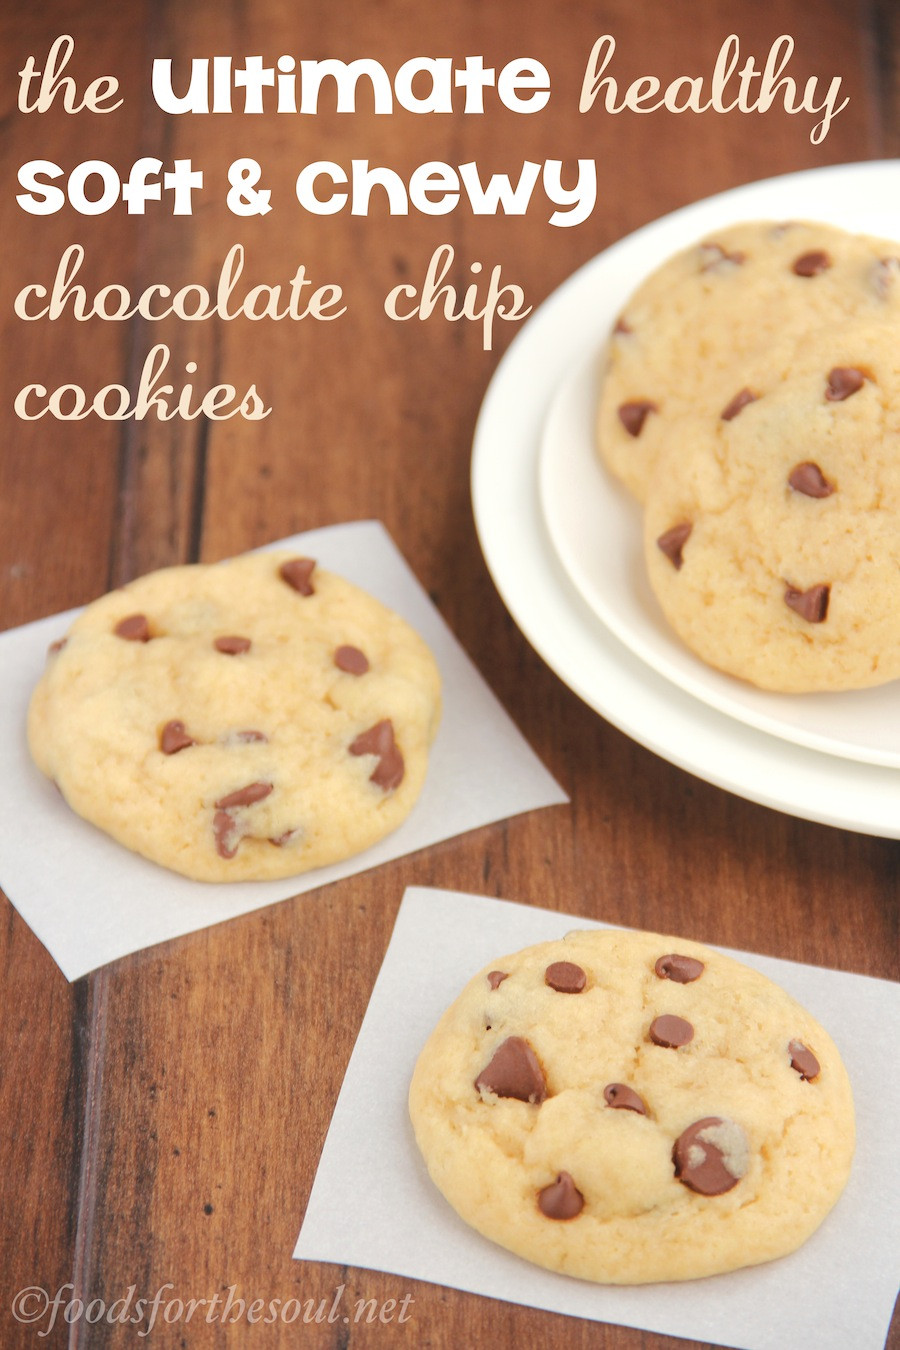 Low Calorie Chocolate Chip Cookies  The Ultimate Healthy Soft & Chewy Chocolate Chip Cookies